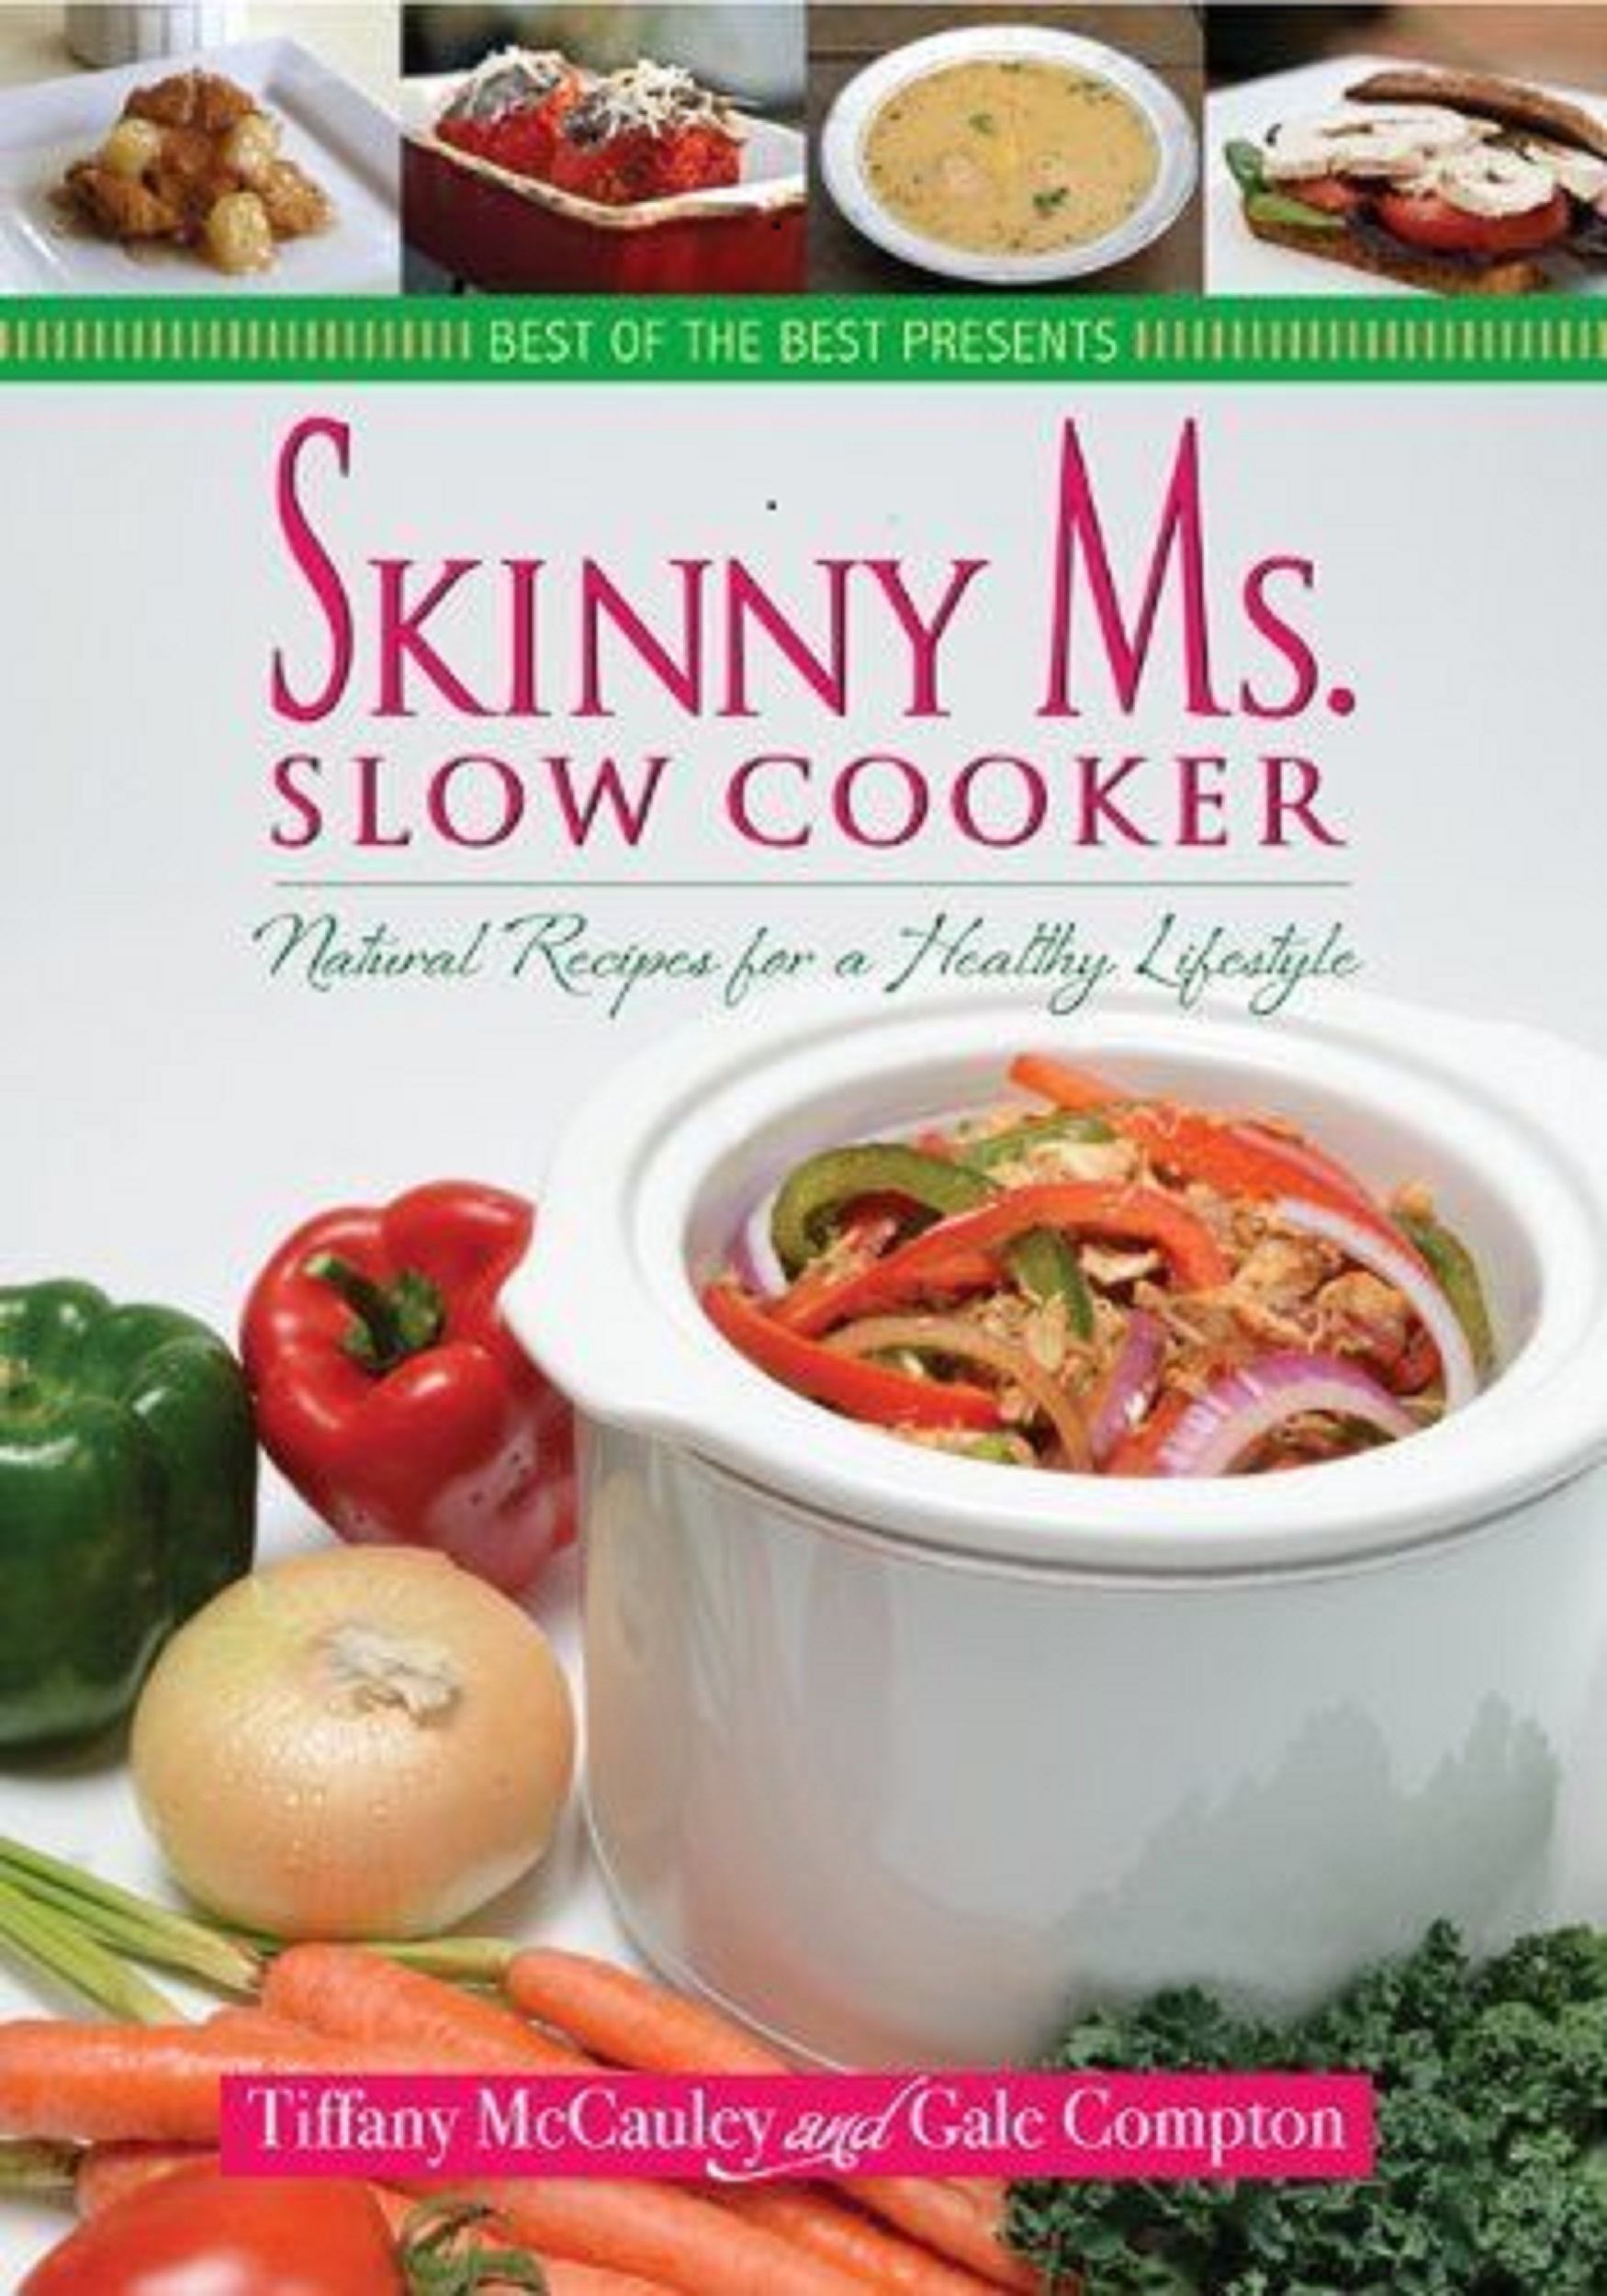 skinny ms slow cooker natural recipes for a healthy lifestyle